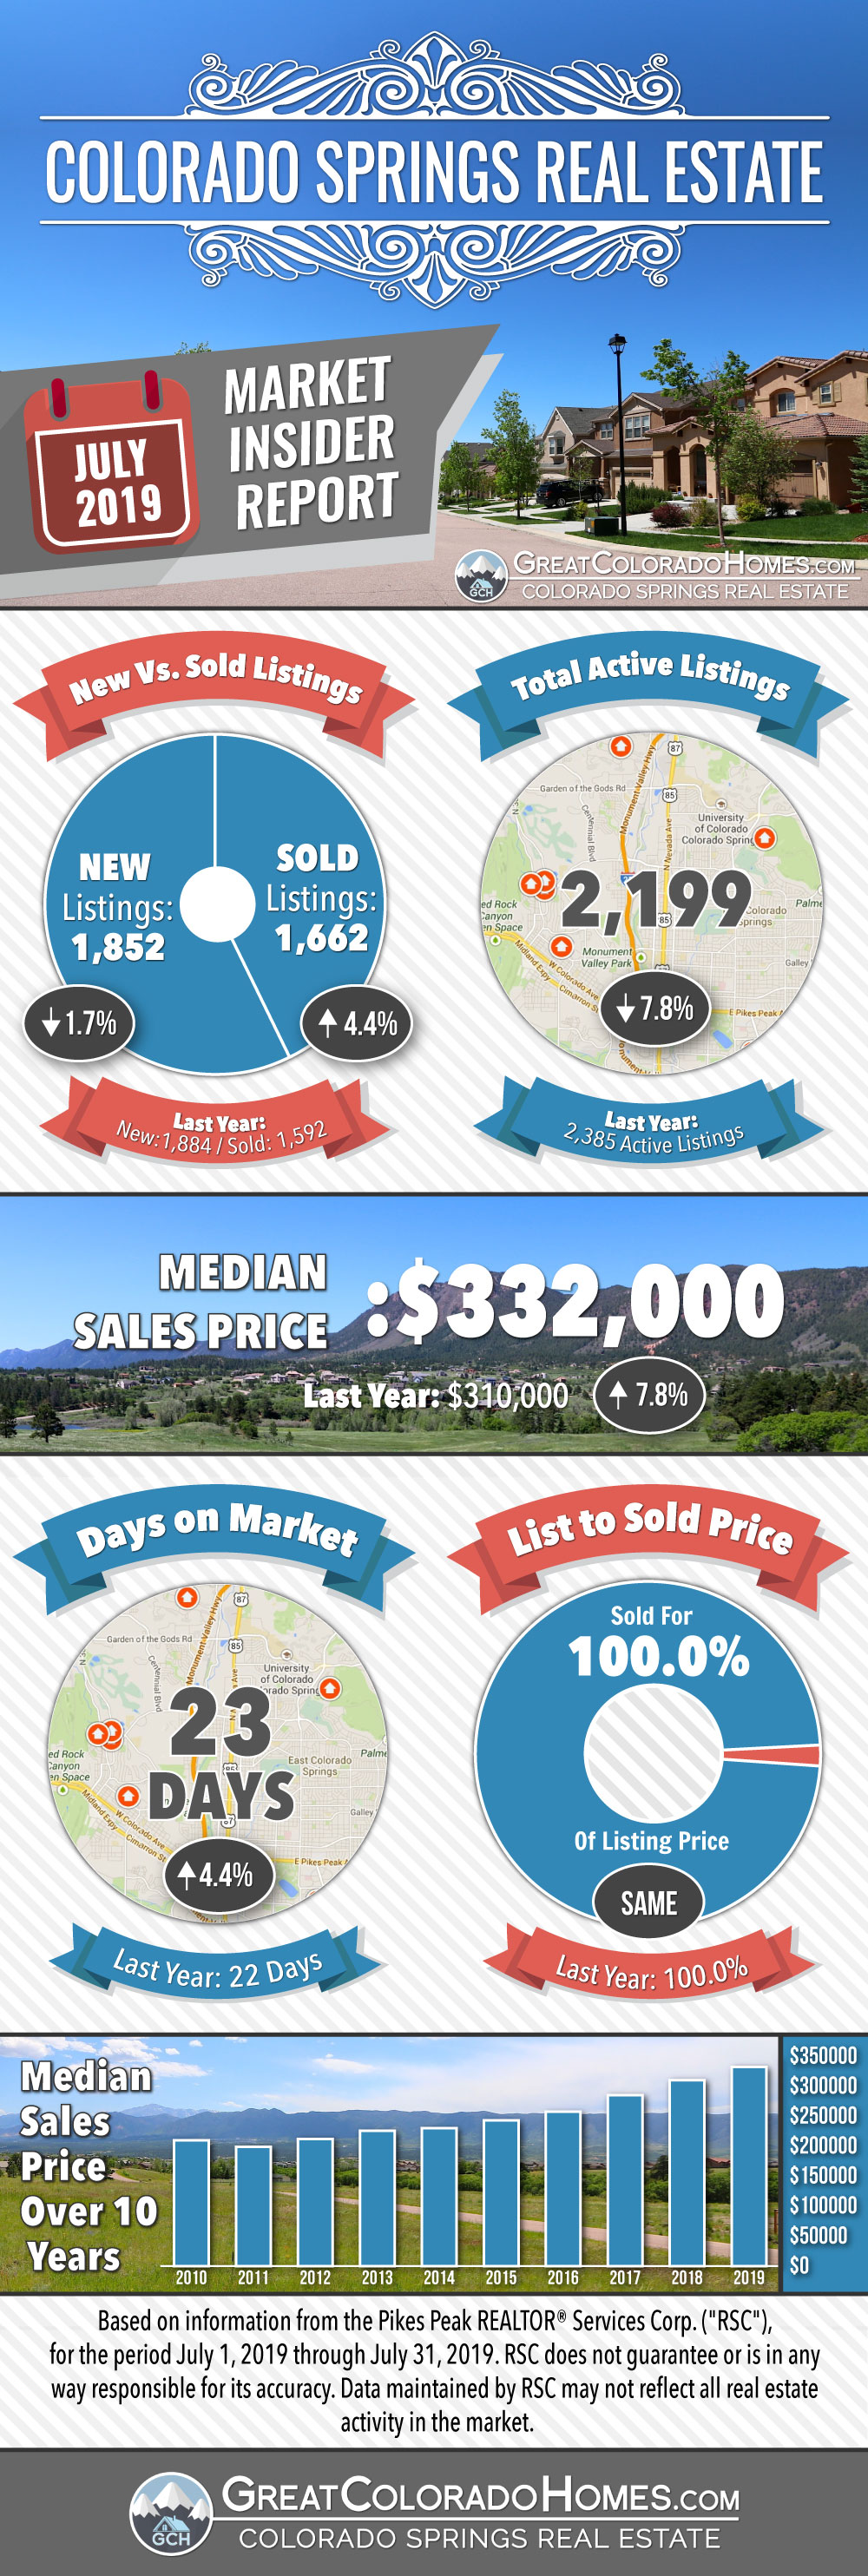 June 2019 Colorado Springs Real Estate Market Statistics Infographic